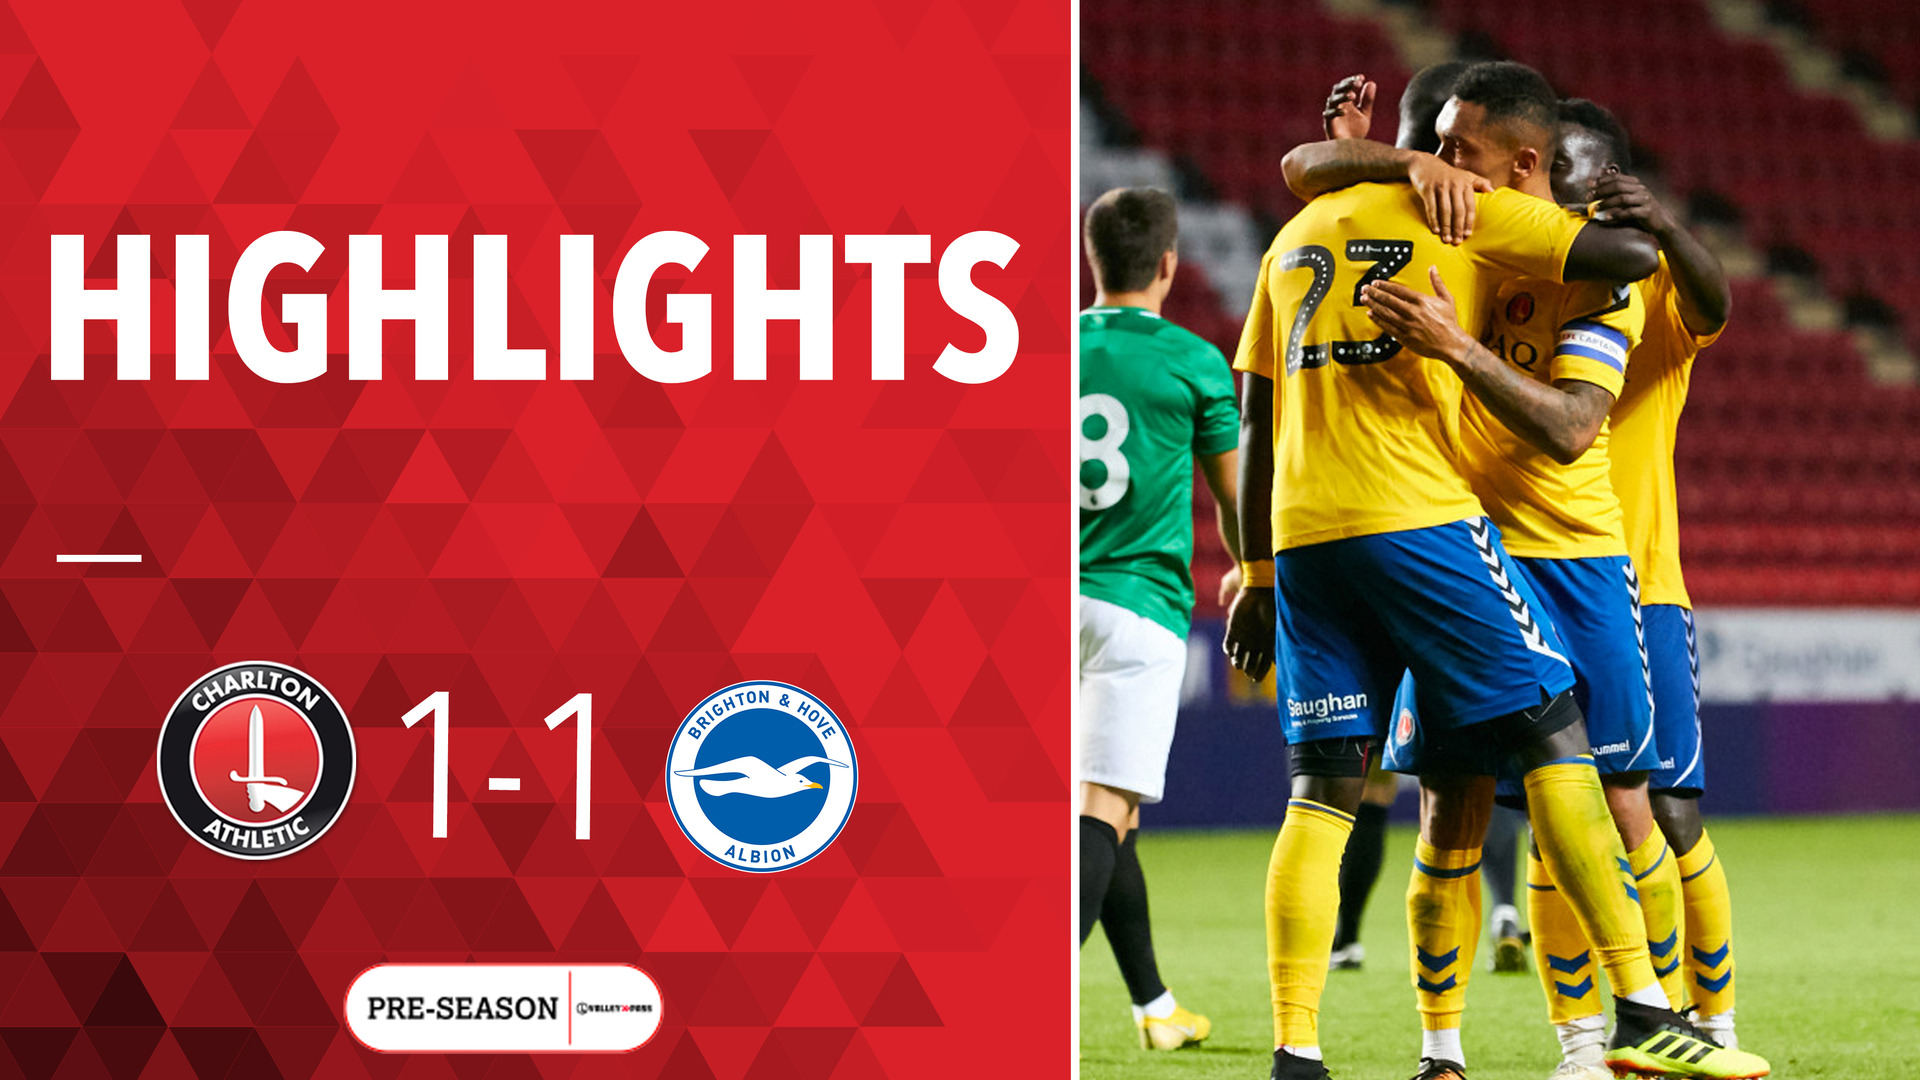 HIGHLIGHTS | Charlton 1 Brighton & Hove 1 (Pre-season July 2018)